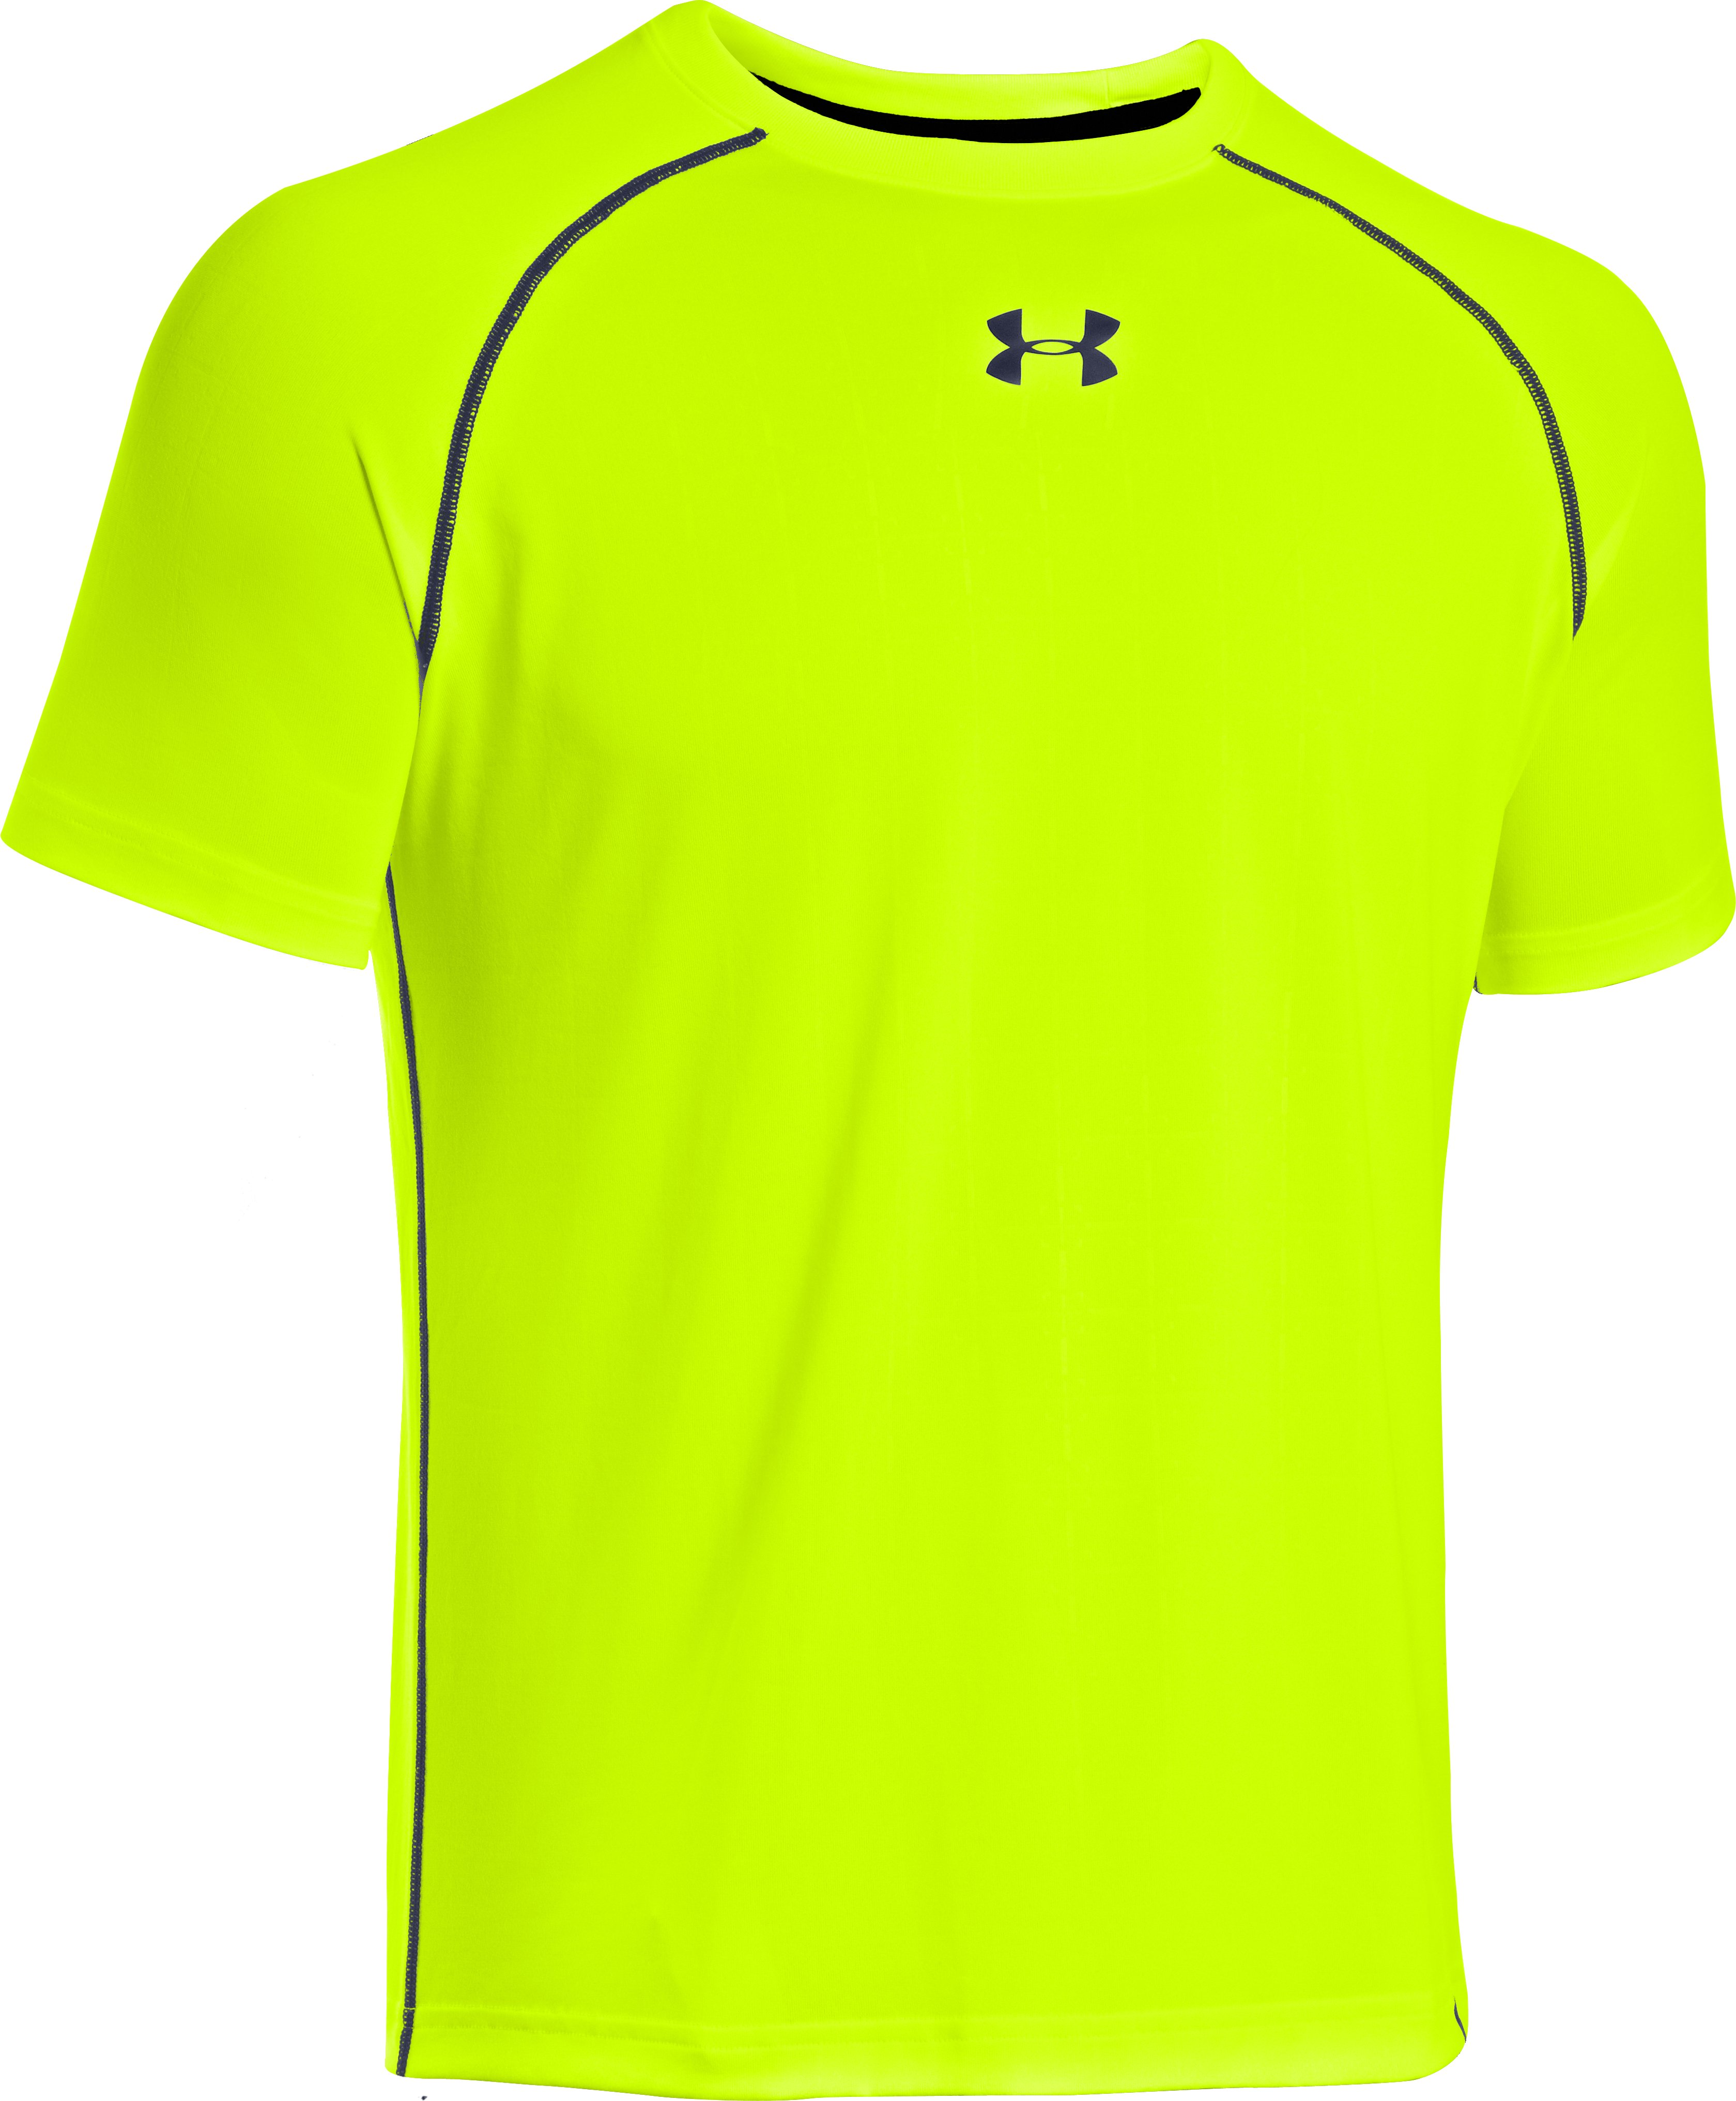 Men's NFL Combine Authentic Training T-Shirt, High-Vis Yellow